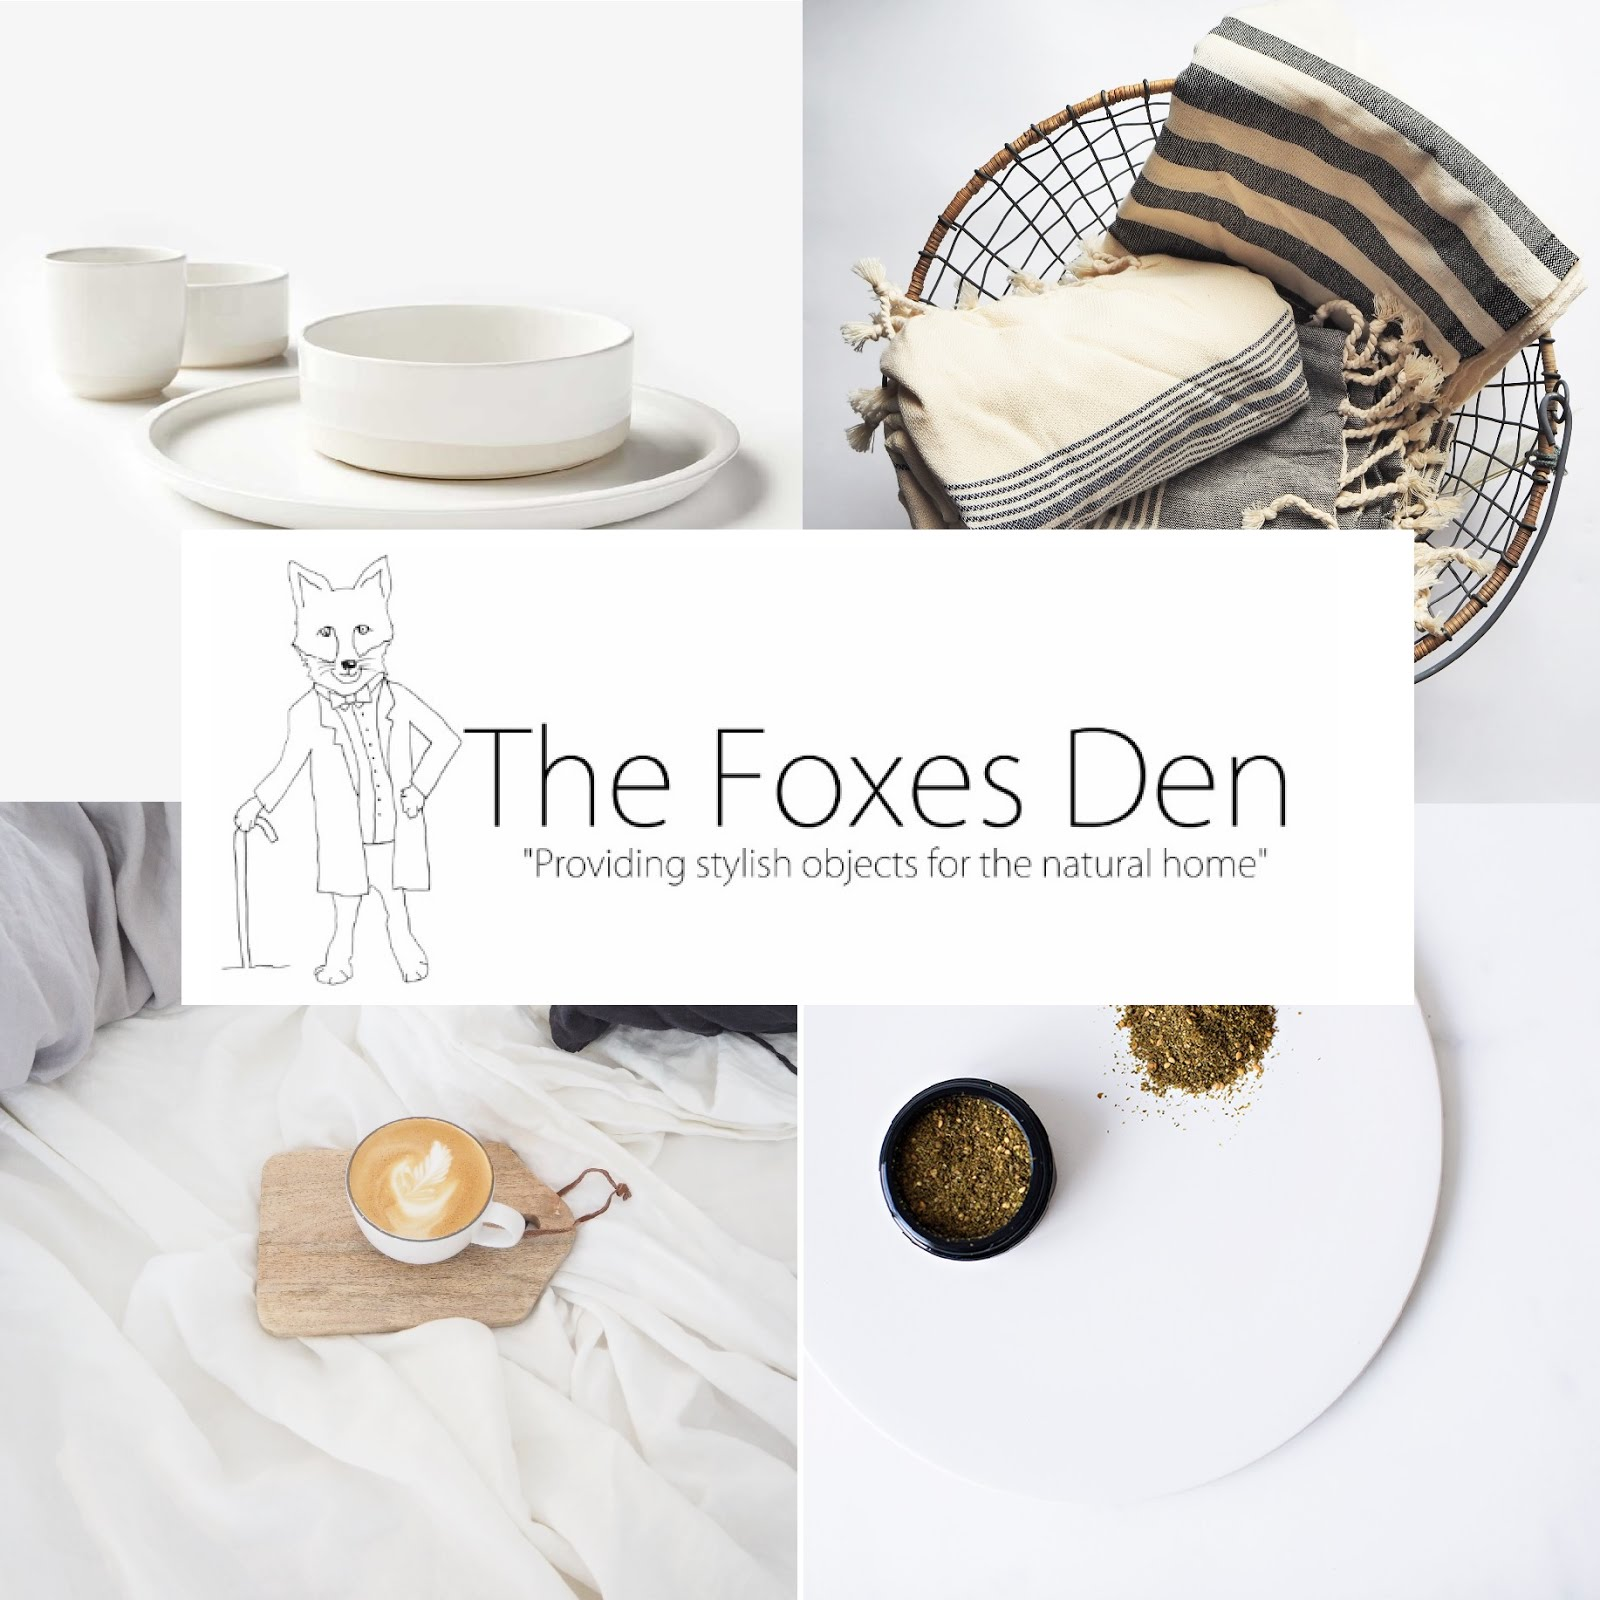 The Foxes Den